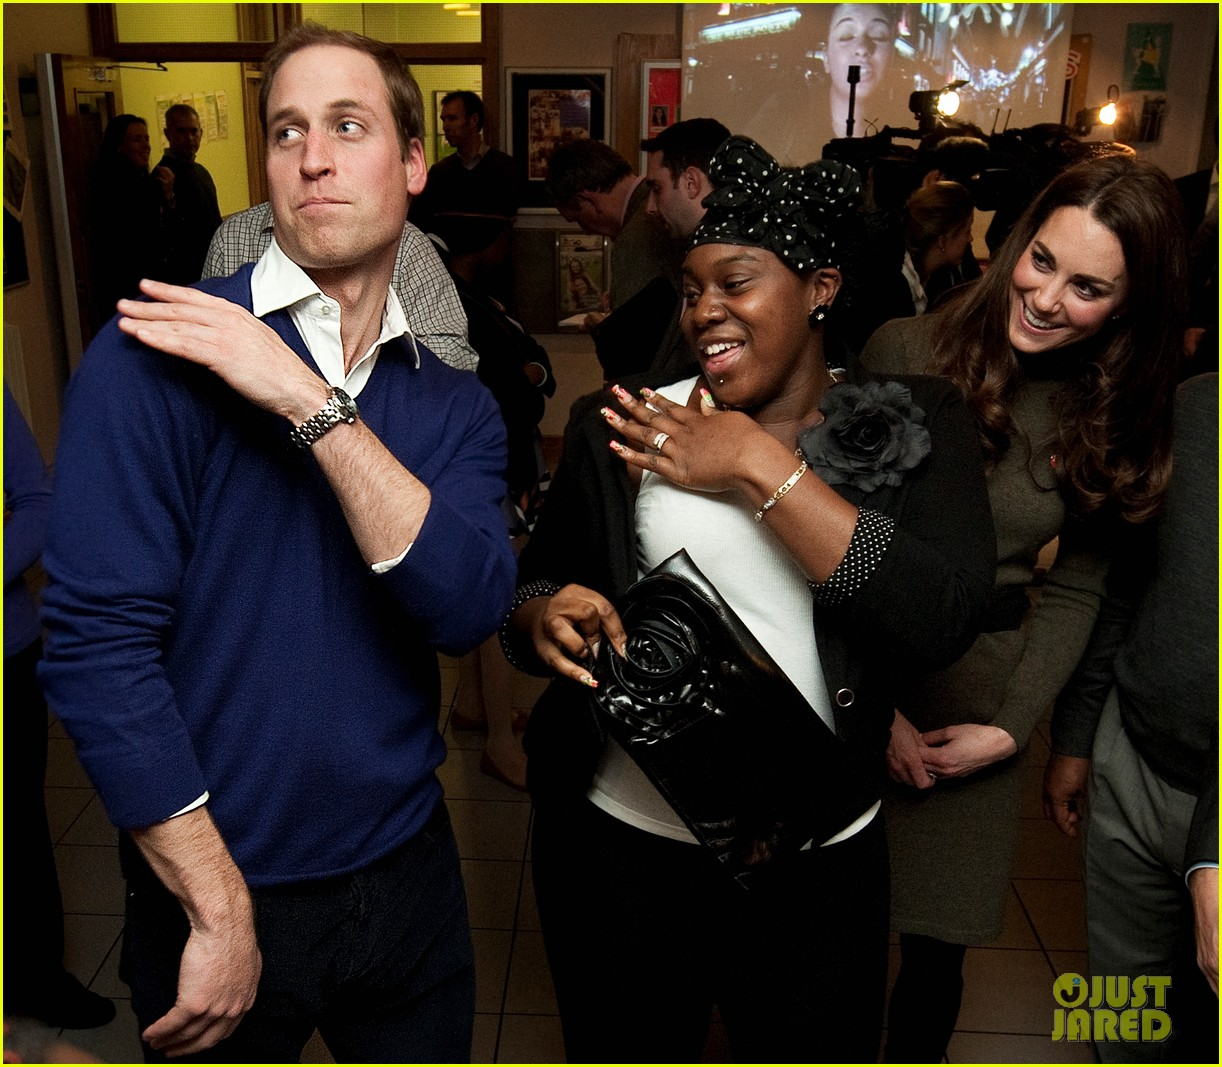 prince william dancing 01